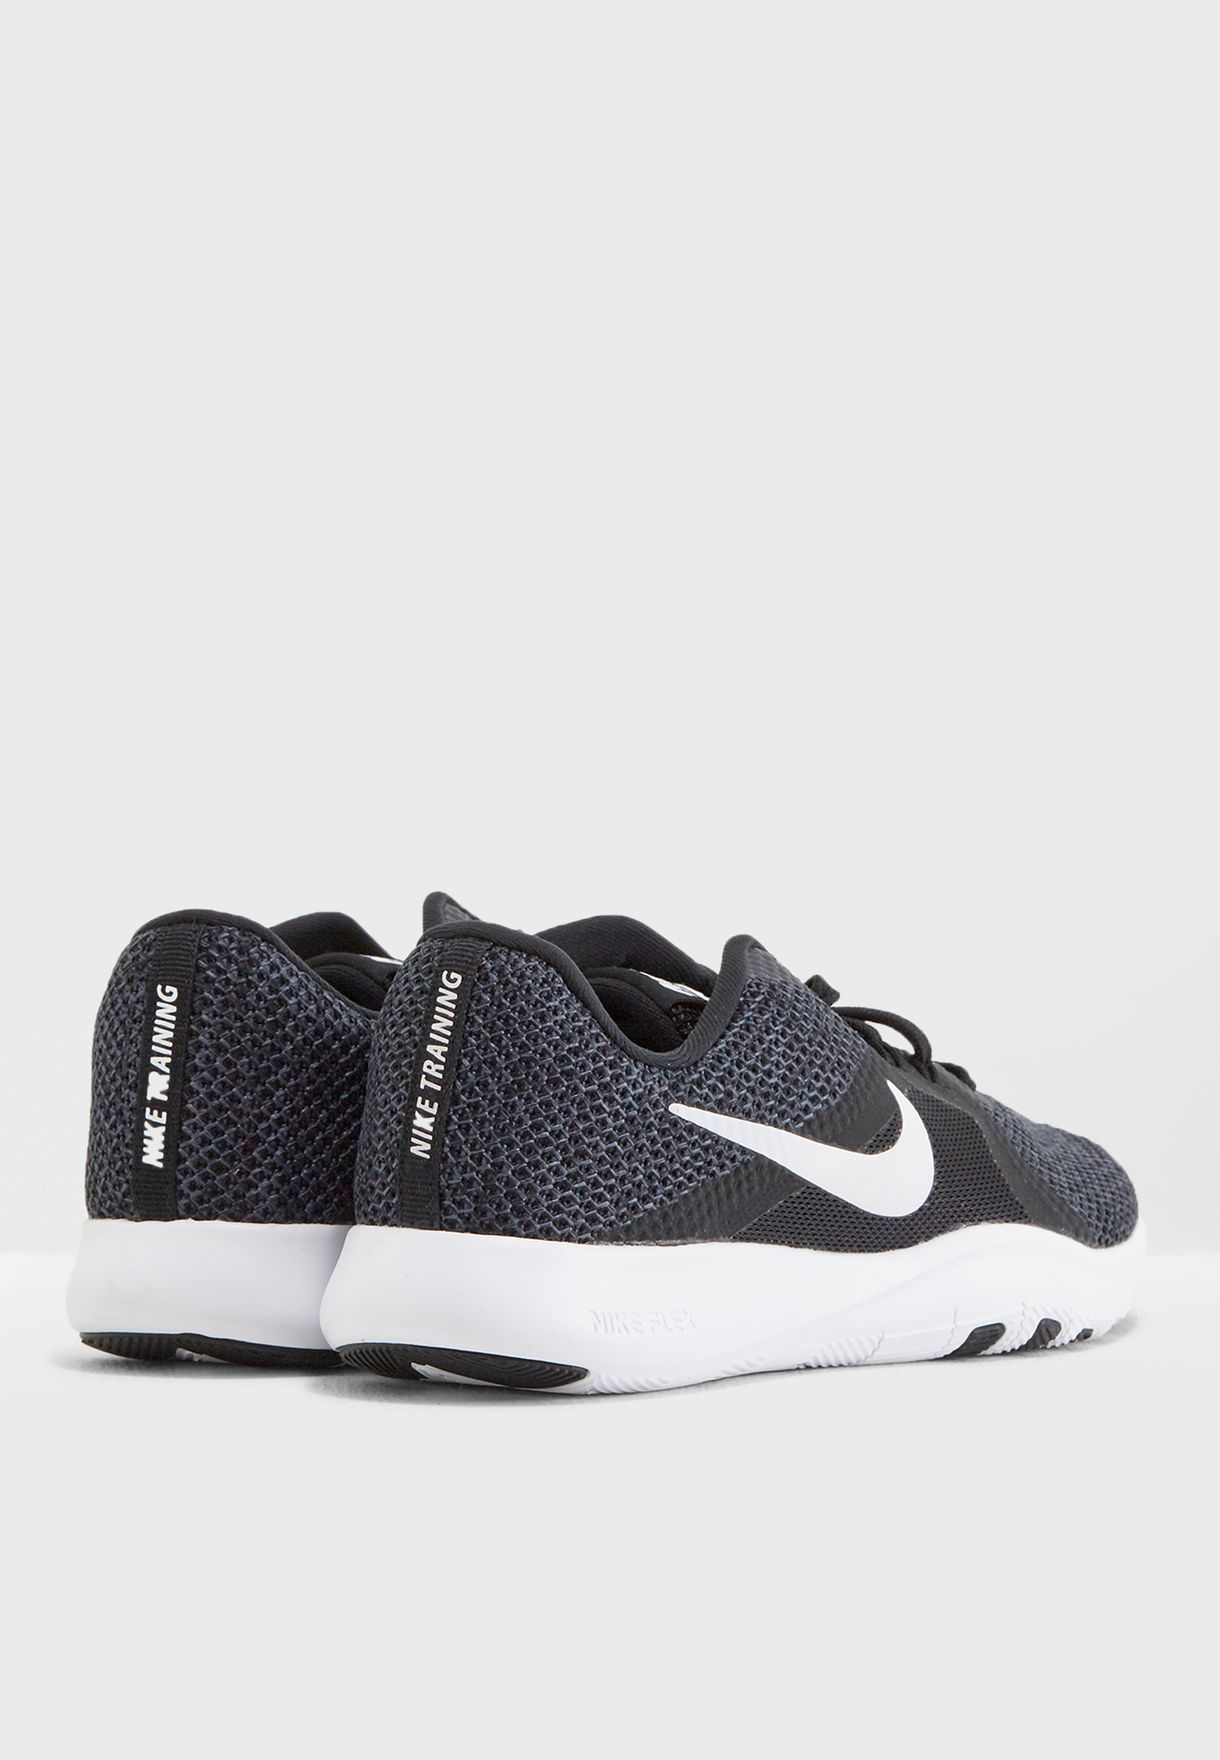 531d945043970 Shop Nike black Flex Trainer 8 924339-001 for Women in UAE ...